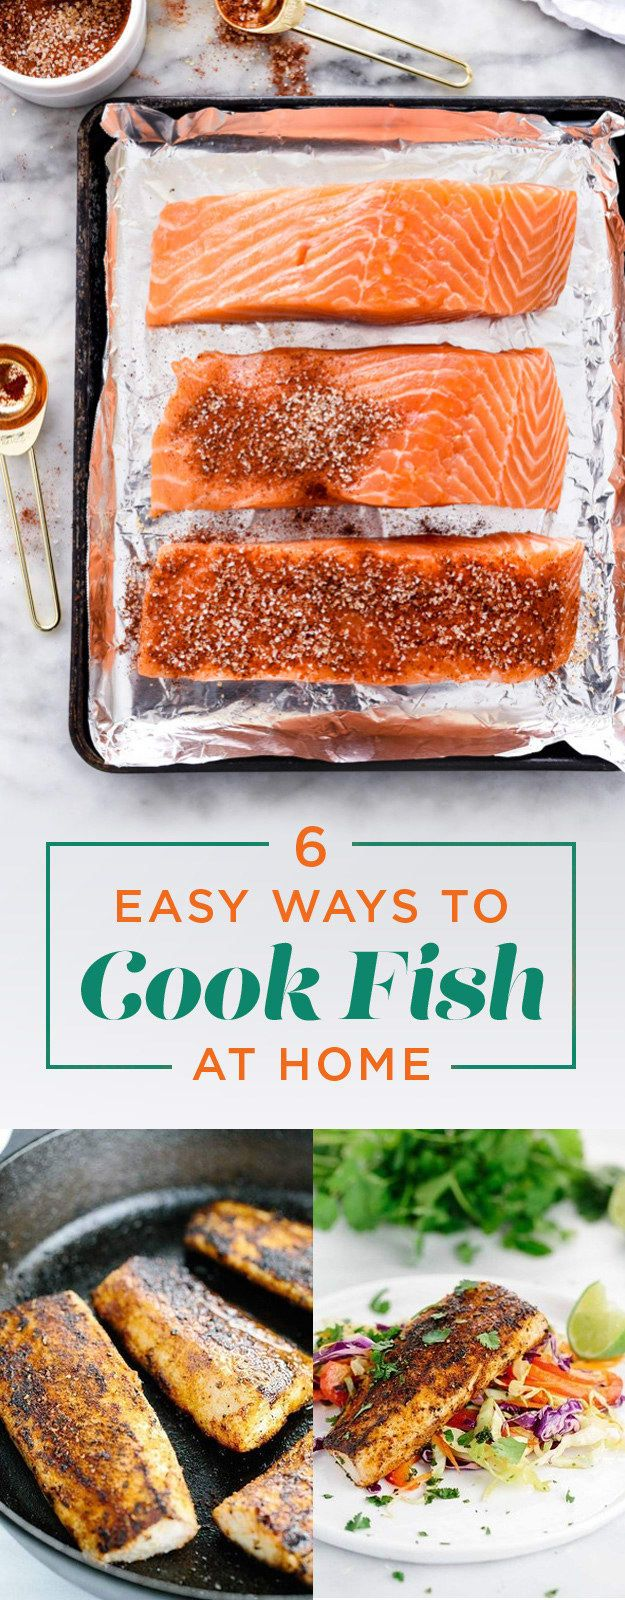 easy to cook fish recipe essay How to cook a whole fish too scared to cook a whole fish ever wondered how to cook a whole fish cooking a whole fish is actually incredibly simple and easy it's the presentation of whole fish in cook books which makes it appear to be a difficult recipe to master, but nothing could be further from the truth.